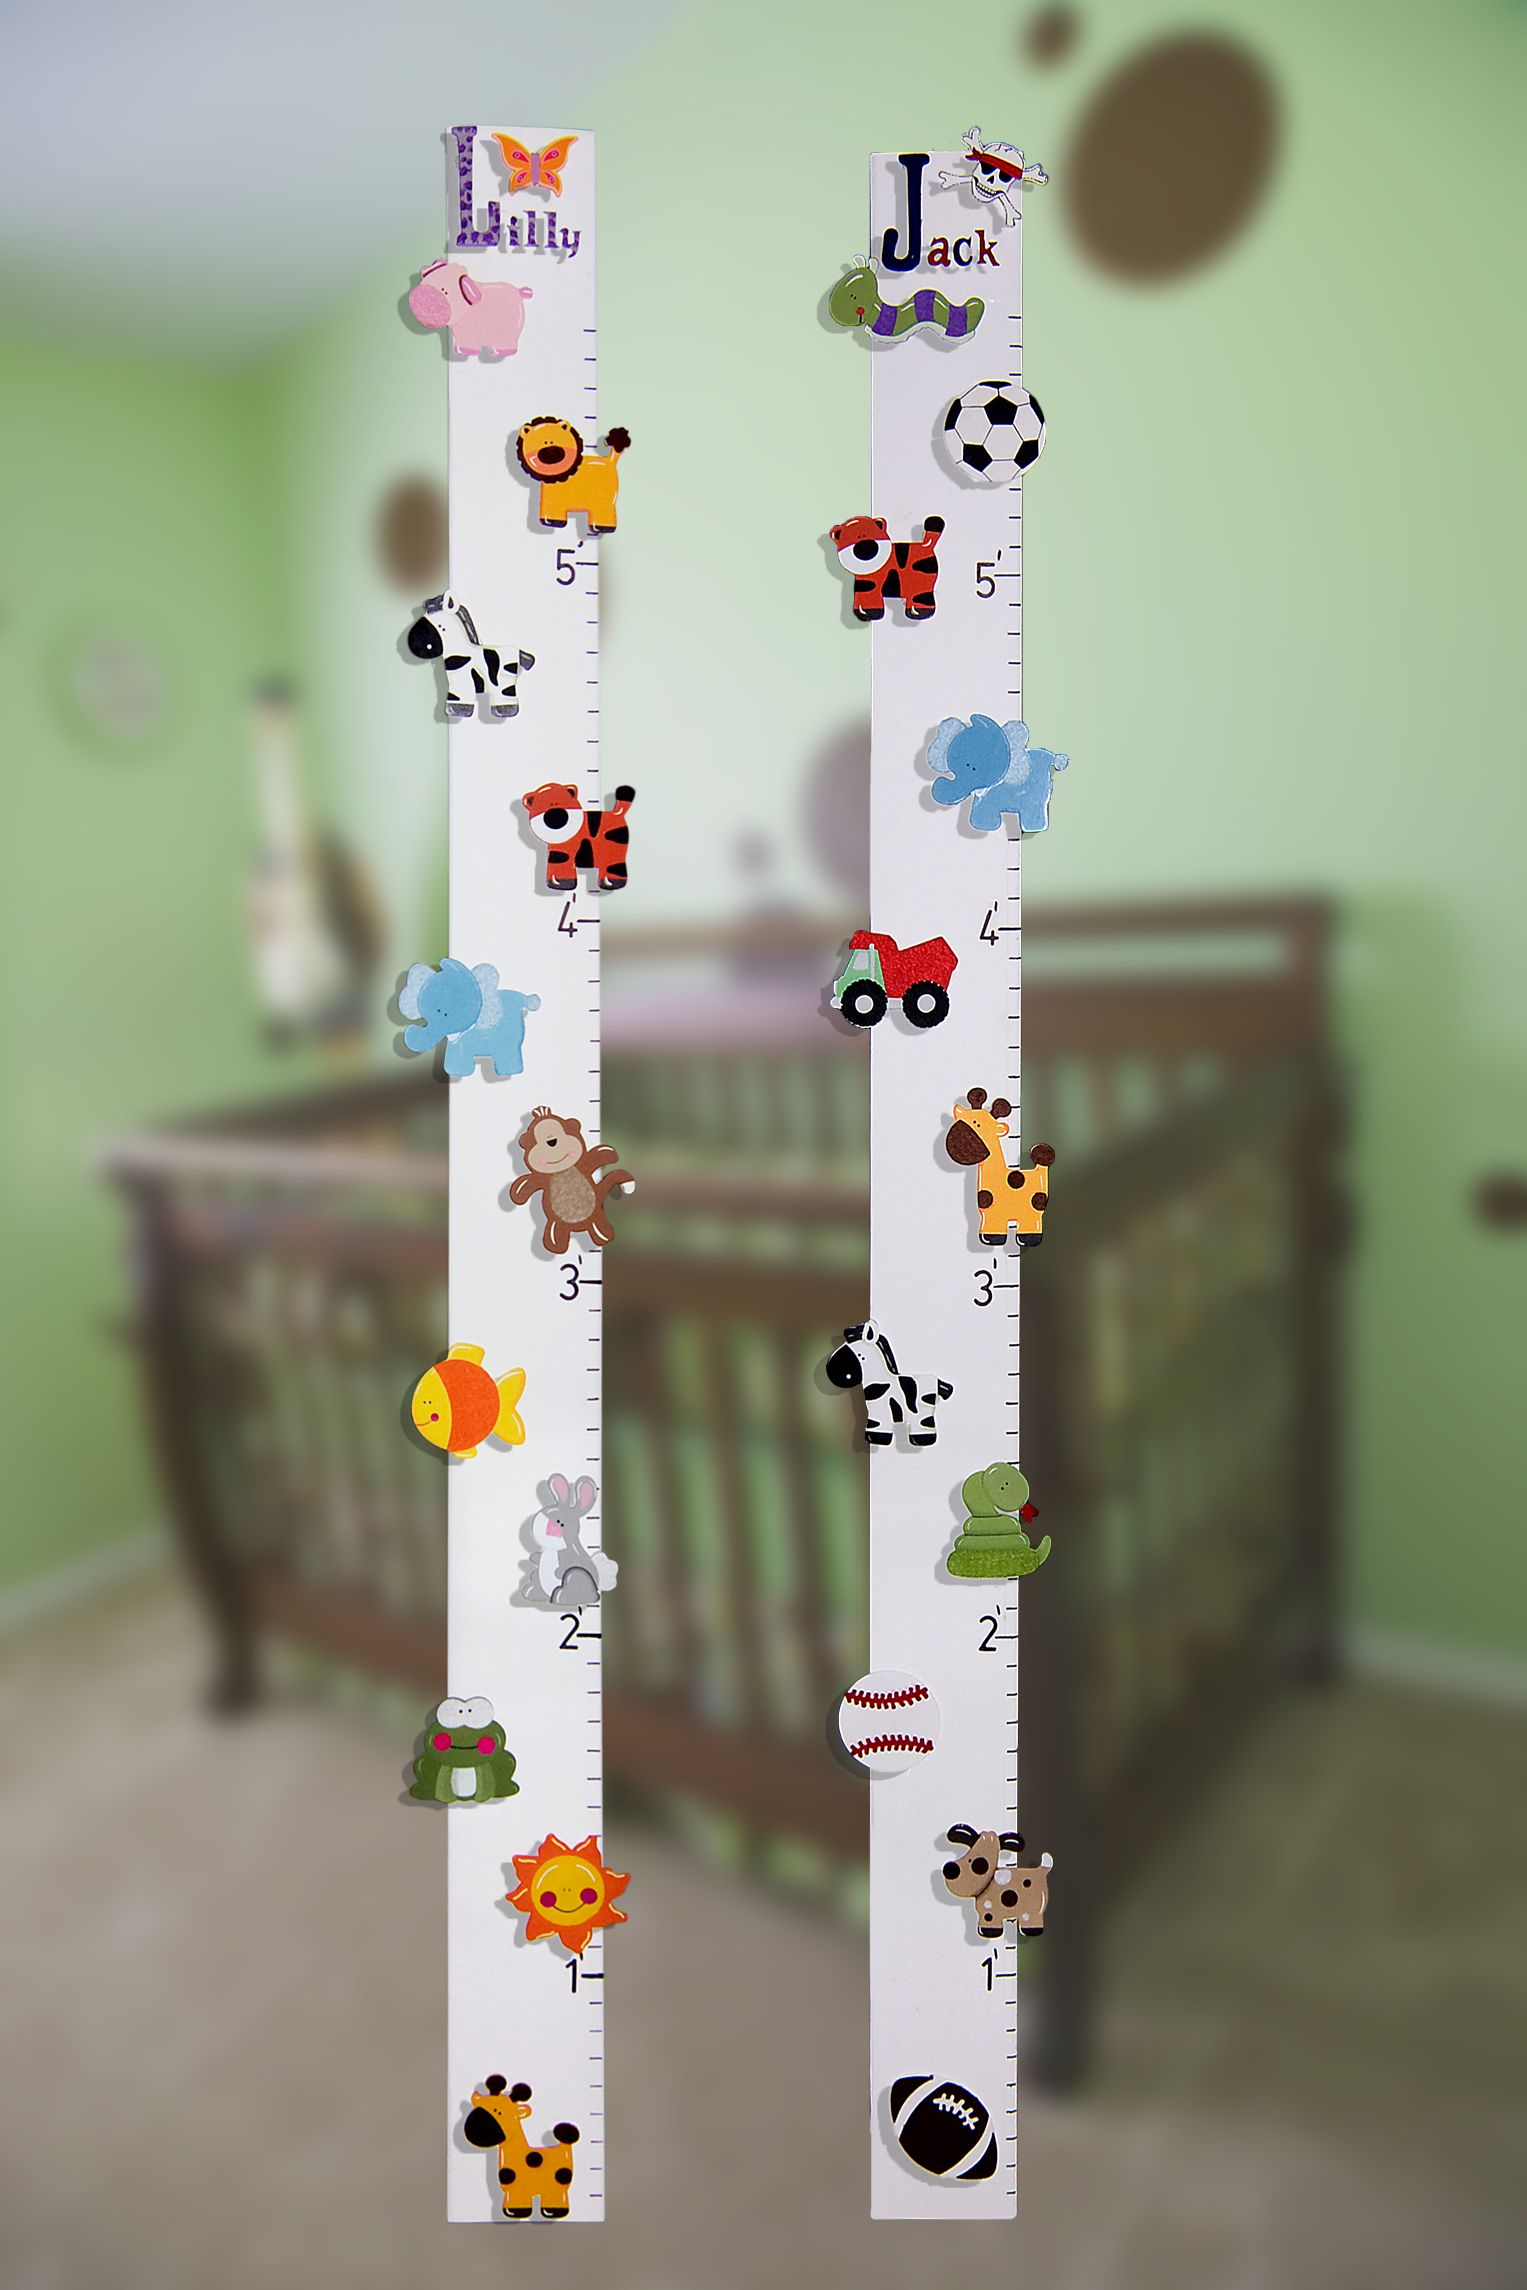 Growth charts baby pinterest growth charts and babies growth memories forever located in barrie designs and produces custom growth charts made from natural wood geenschuldenfo Choice Image